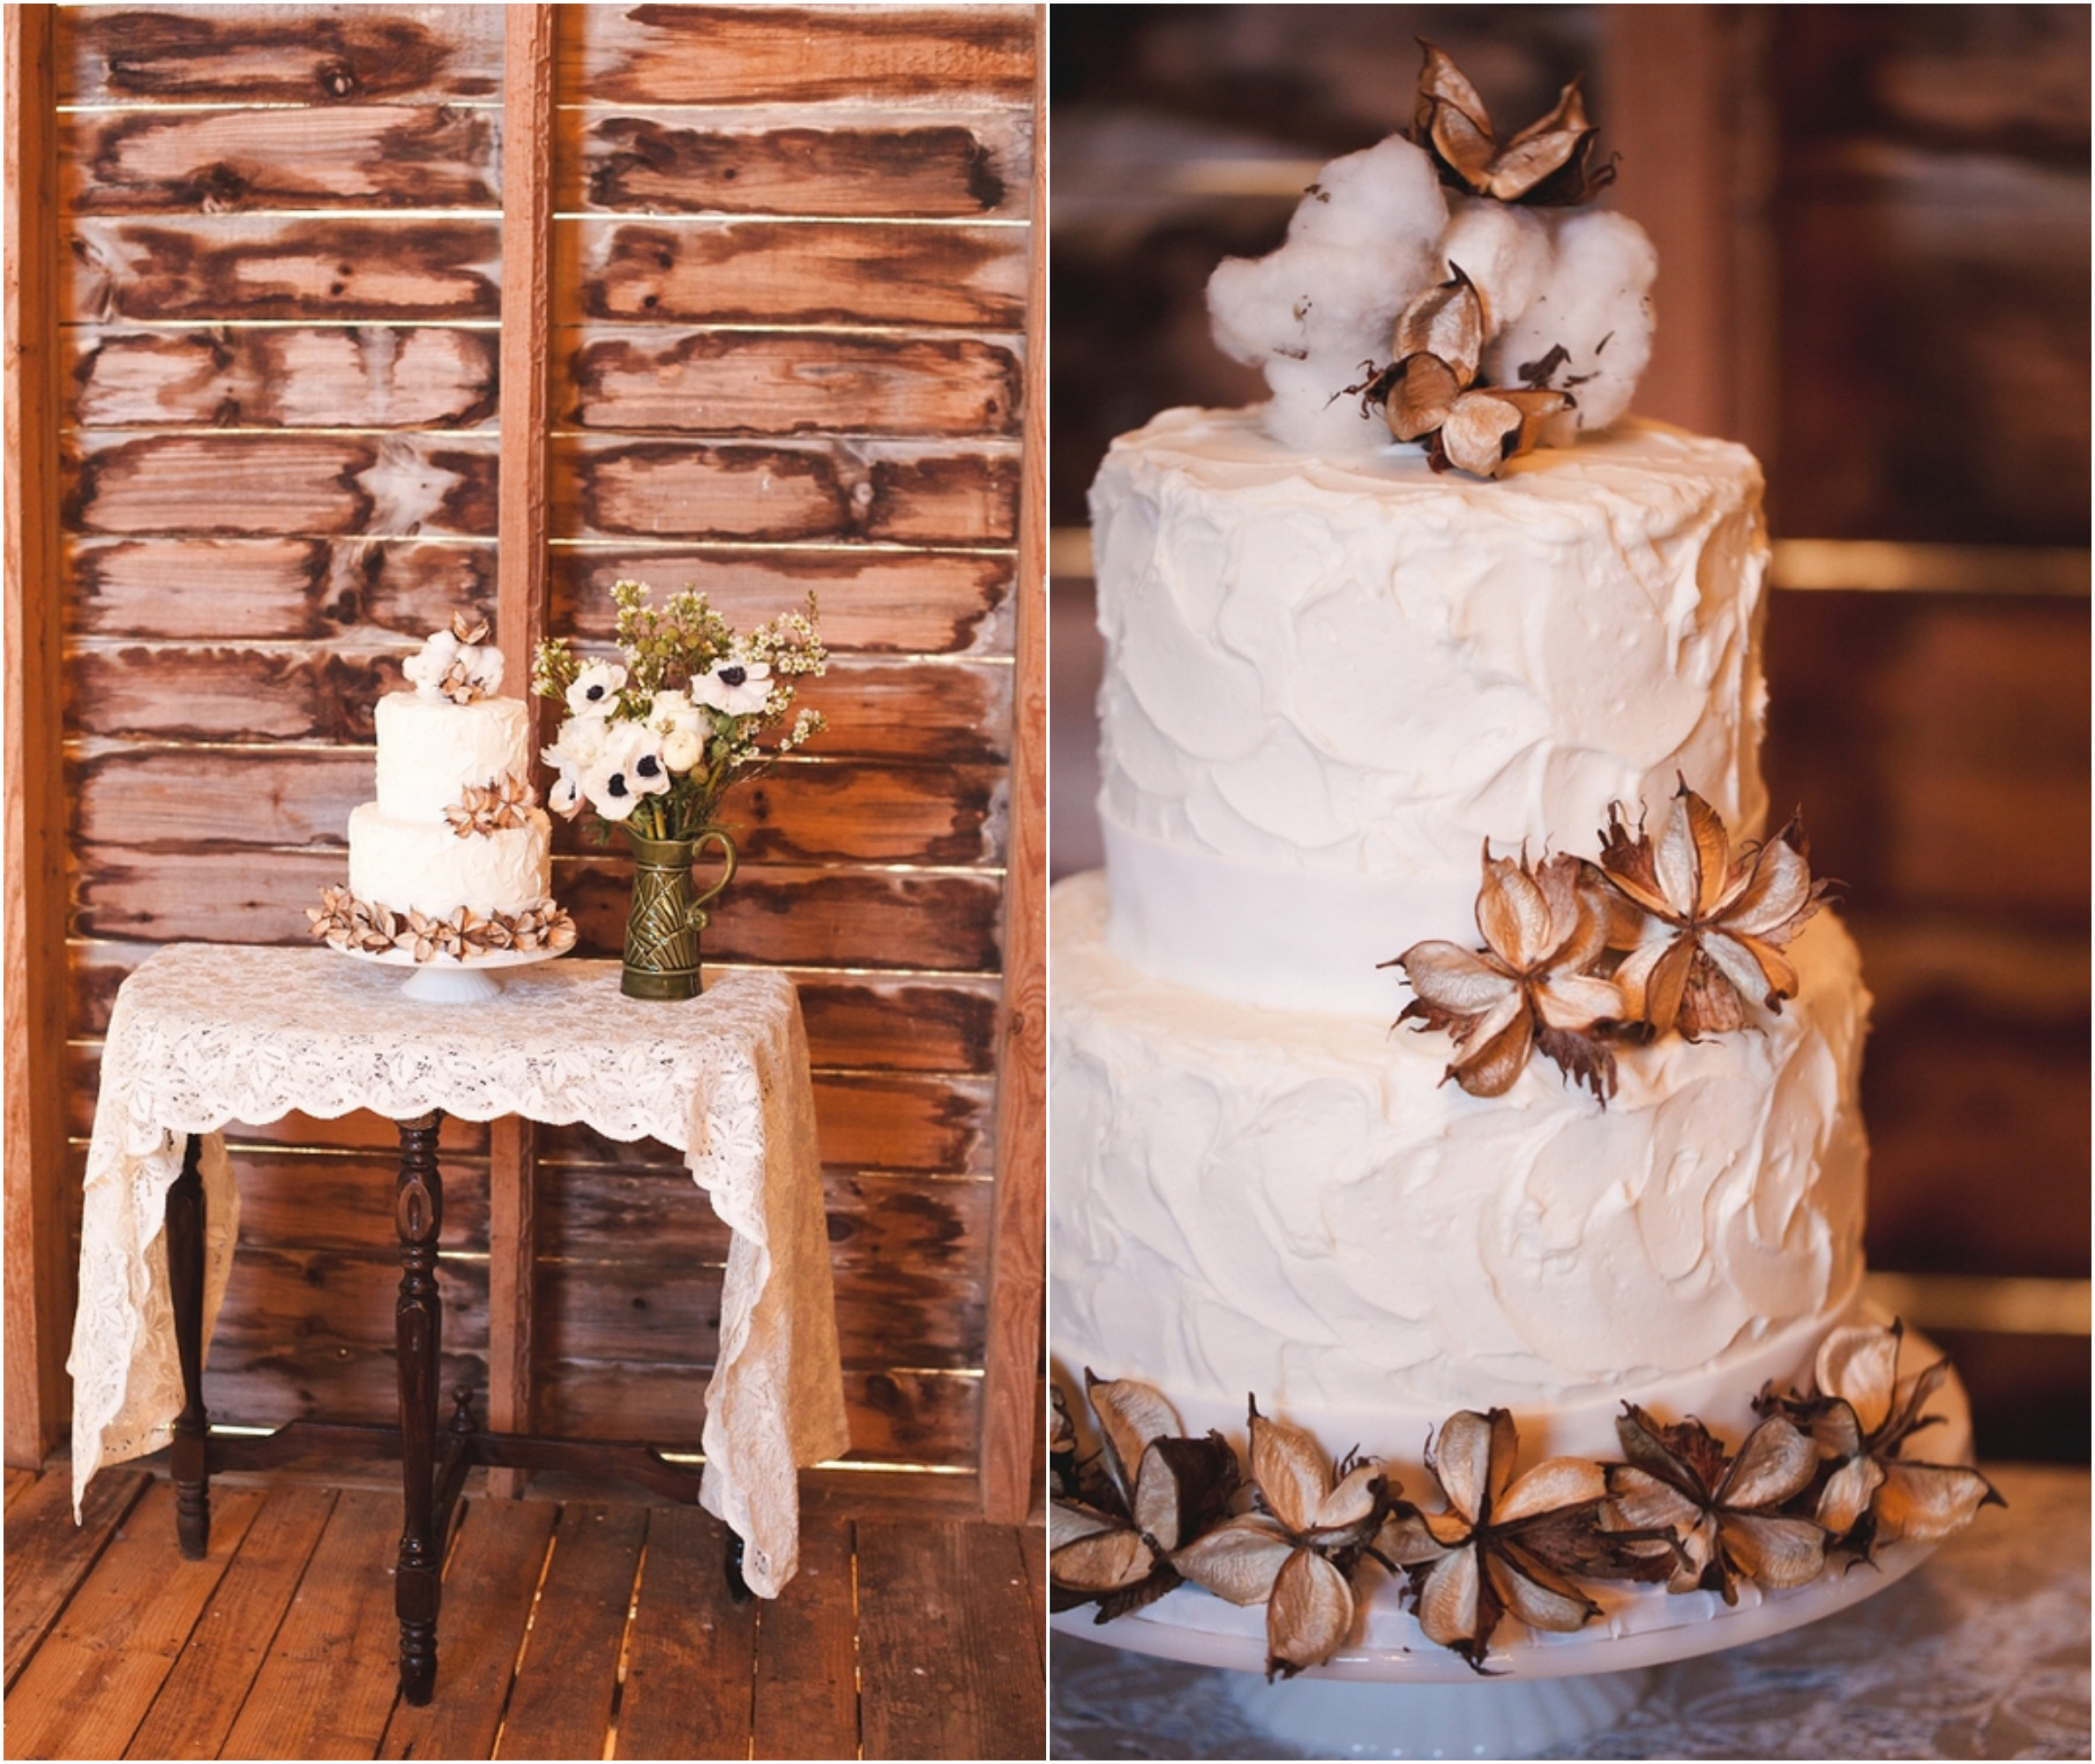 Rustic Wedding Cake Ideas And Inspiration: Romantic Rustic Wedding Inspiration